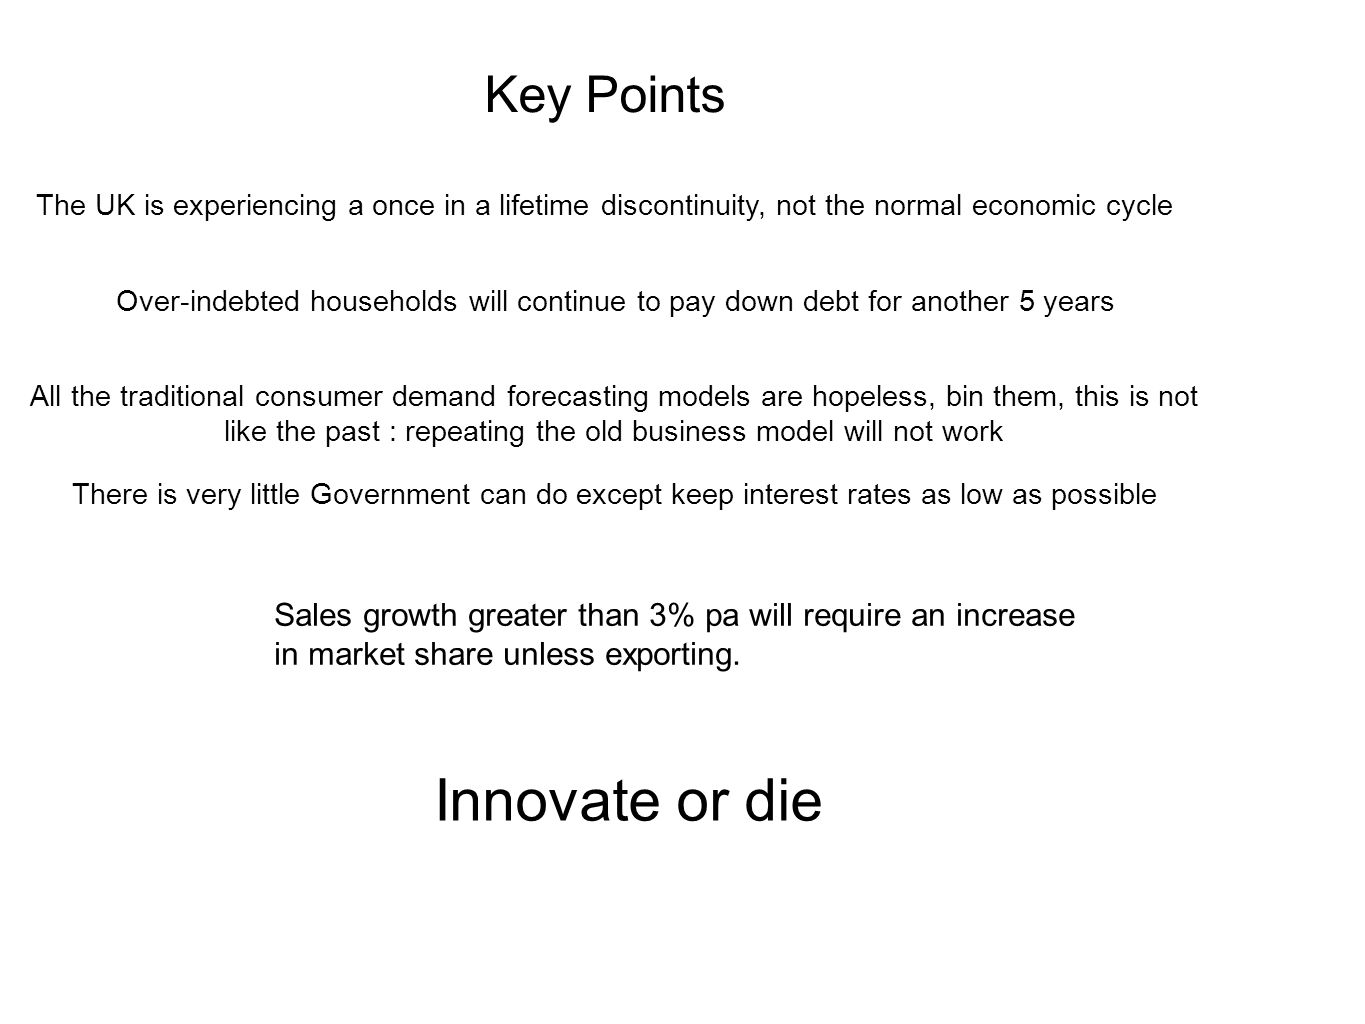 Key Points The UK is experiencing a once in a lifetime discontinuity, not the normal economic cycle Over-indebted households will continue to pay down debt for another 5 years All the traditional consumer demand forecasting models are hopeless, bin them, this is not like the past : repeating the old business model will not work Innovate or die There is very little Government can do except keep interest rates as low as possible Sales growth greater than 3% pa will require an increase in market share unless exporting.